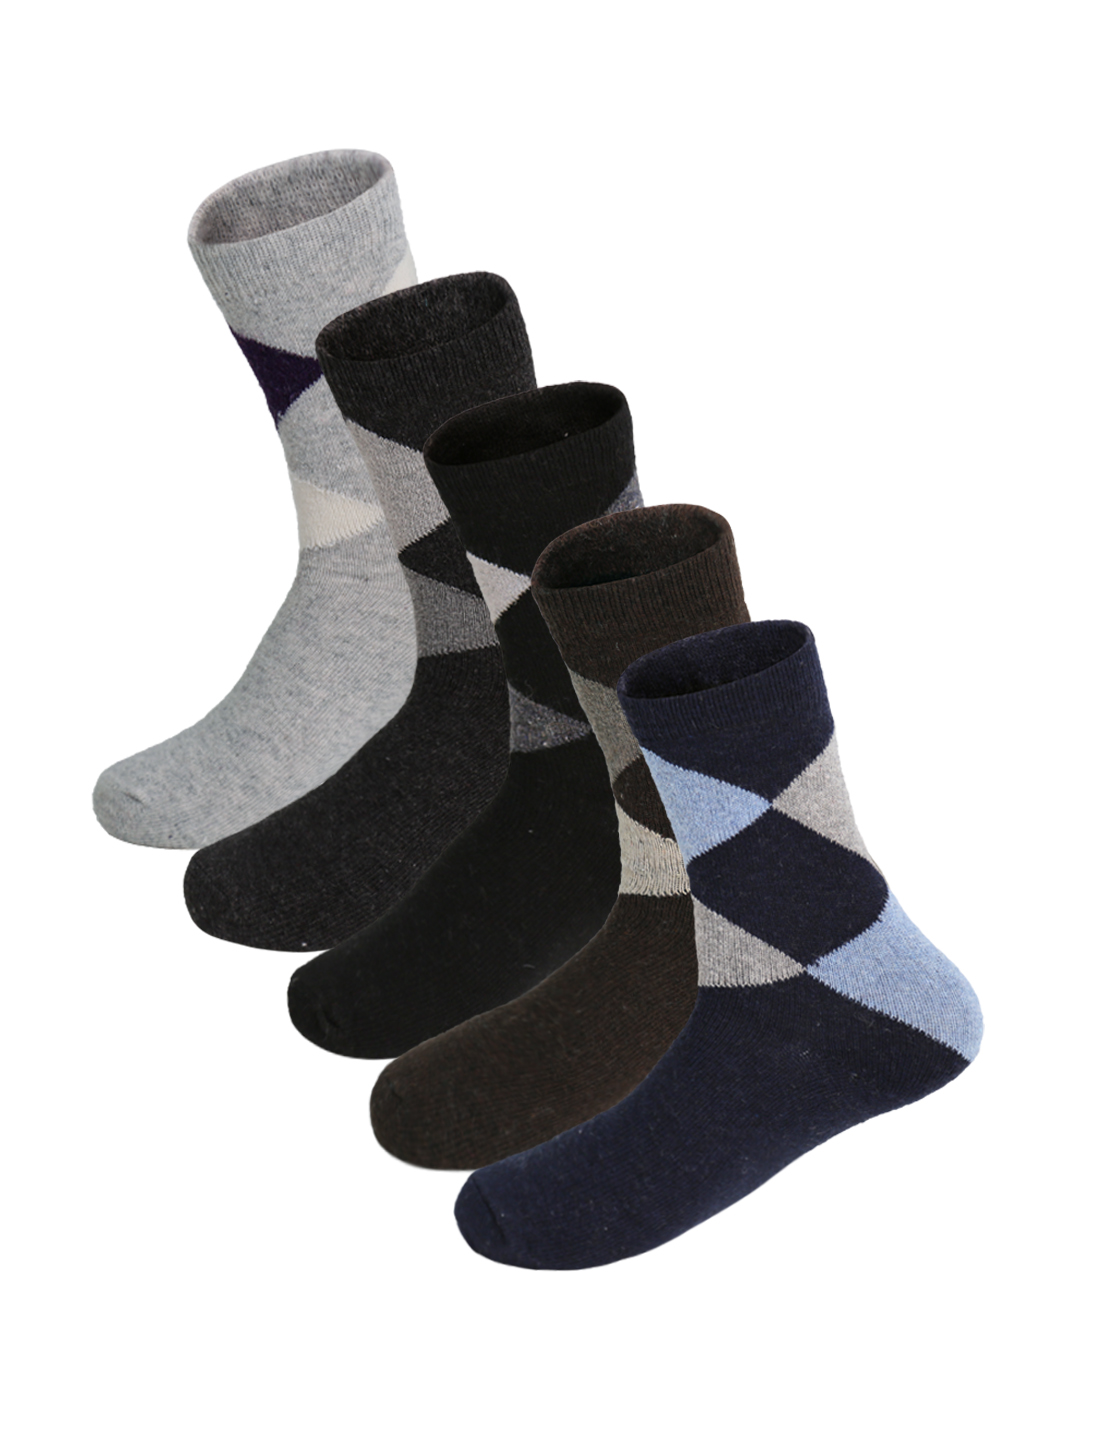 Men 5 Pack Argyle Pattern Half Cushion Basic Crew Socks Assorted 10-12